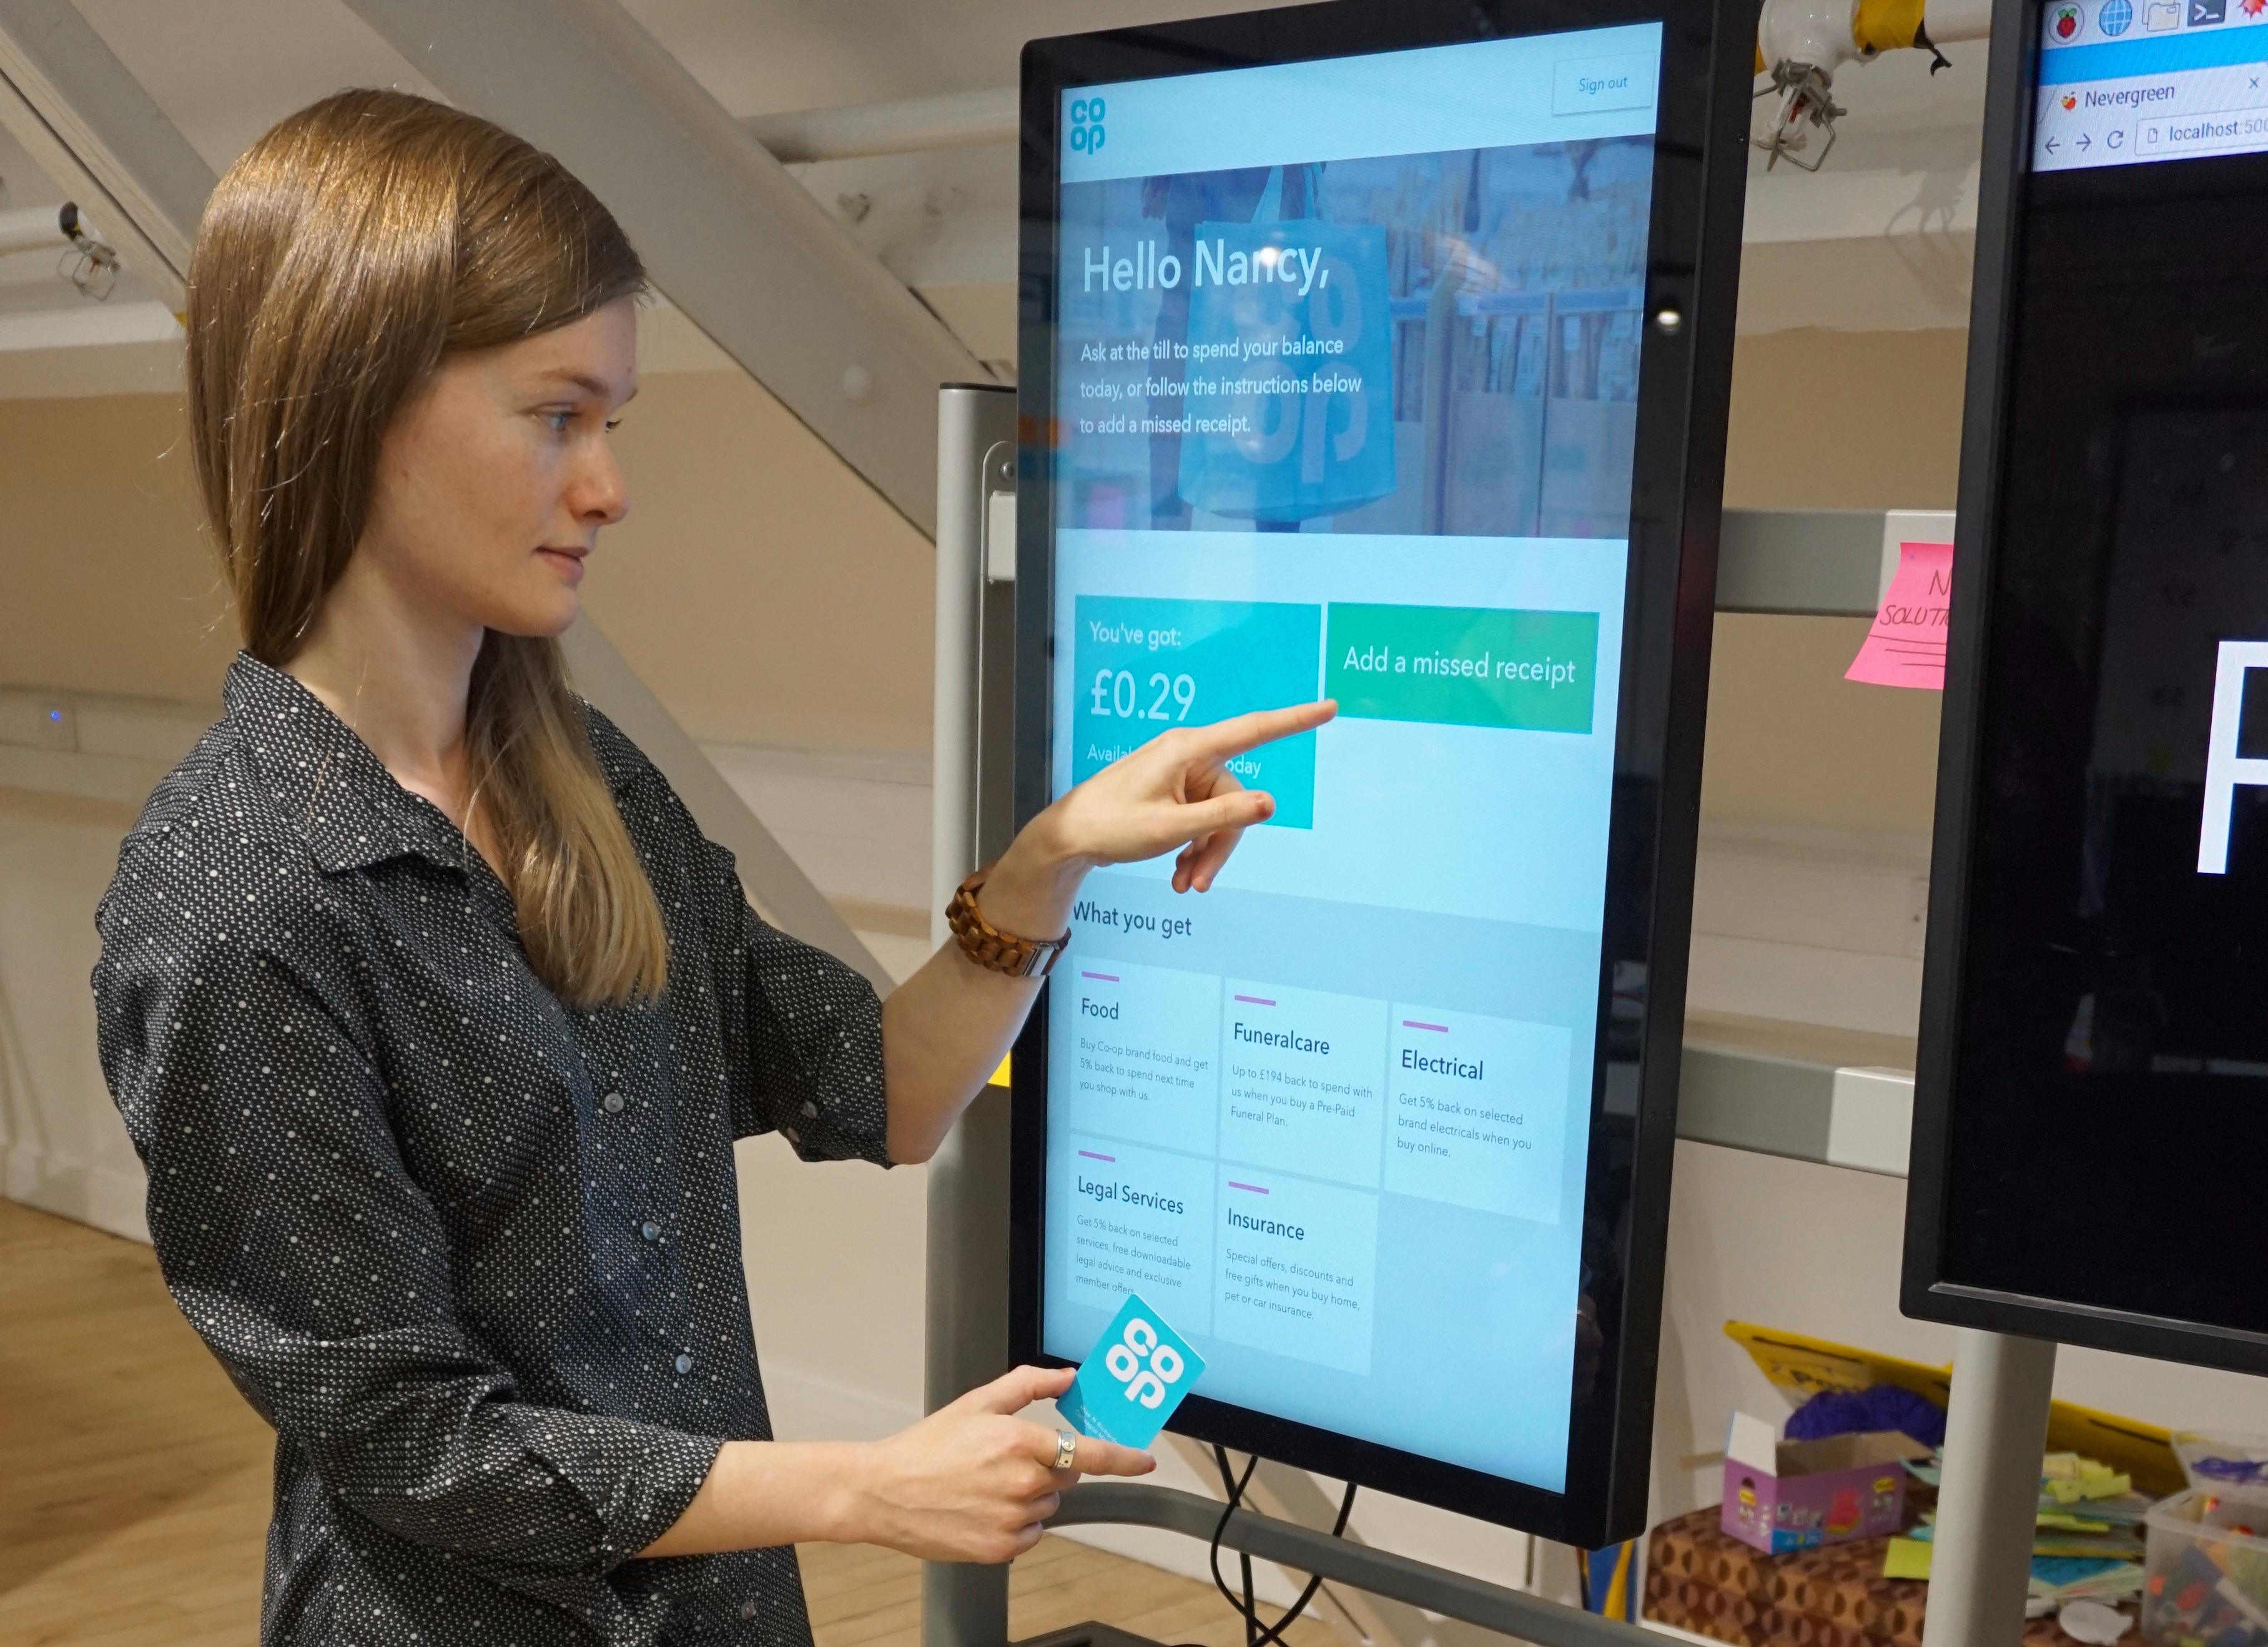 photograph of colleague Nancy using the touchscreen in the office. Touchscreen shows Nancy is signed into her account, she can see her rewards and she can add a missed receipt.